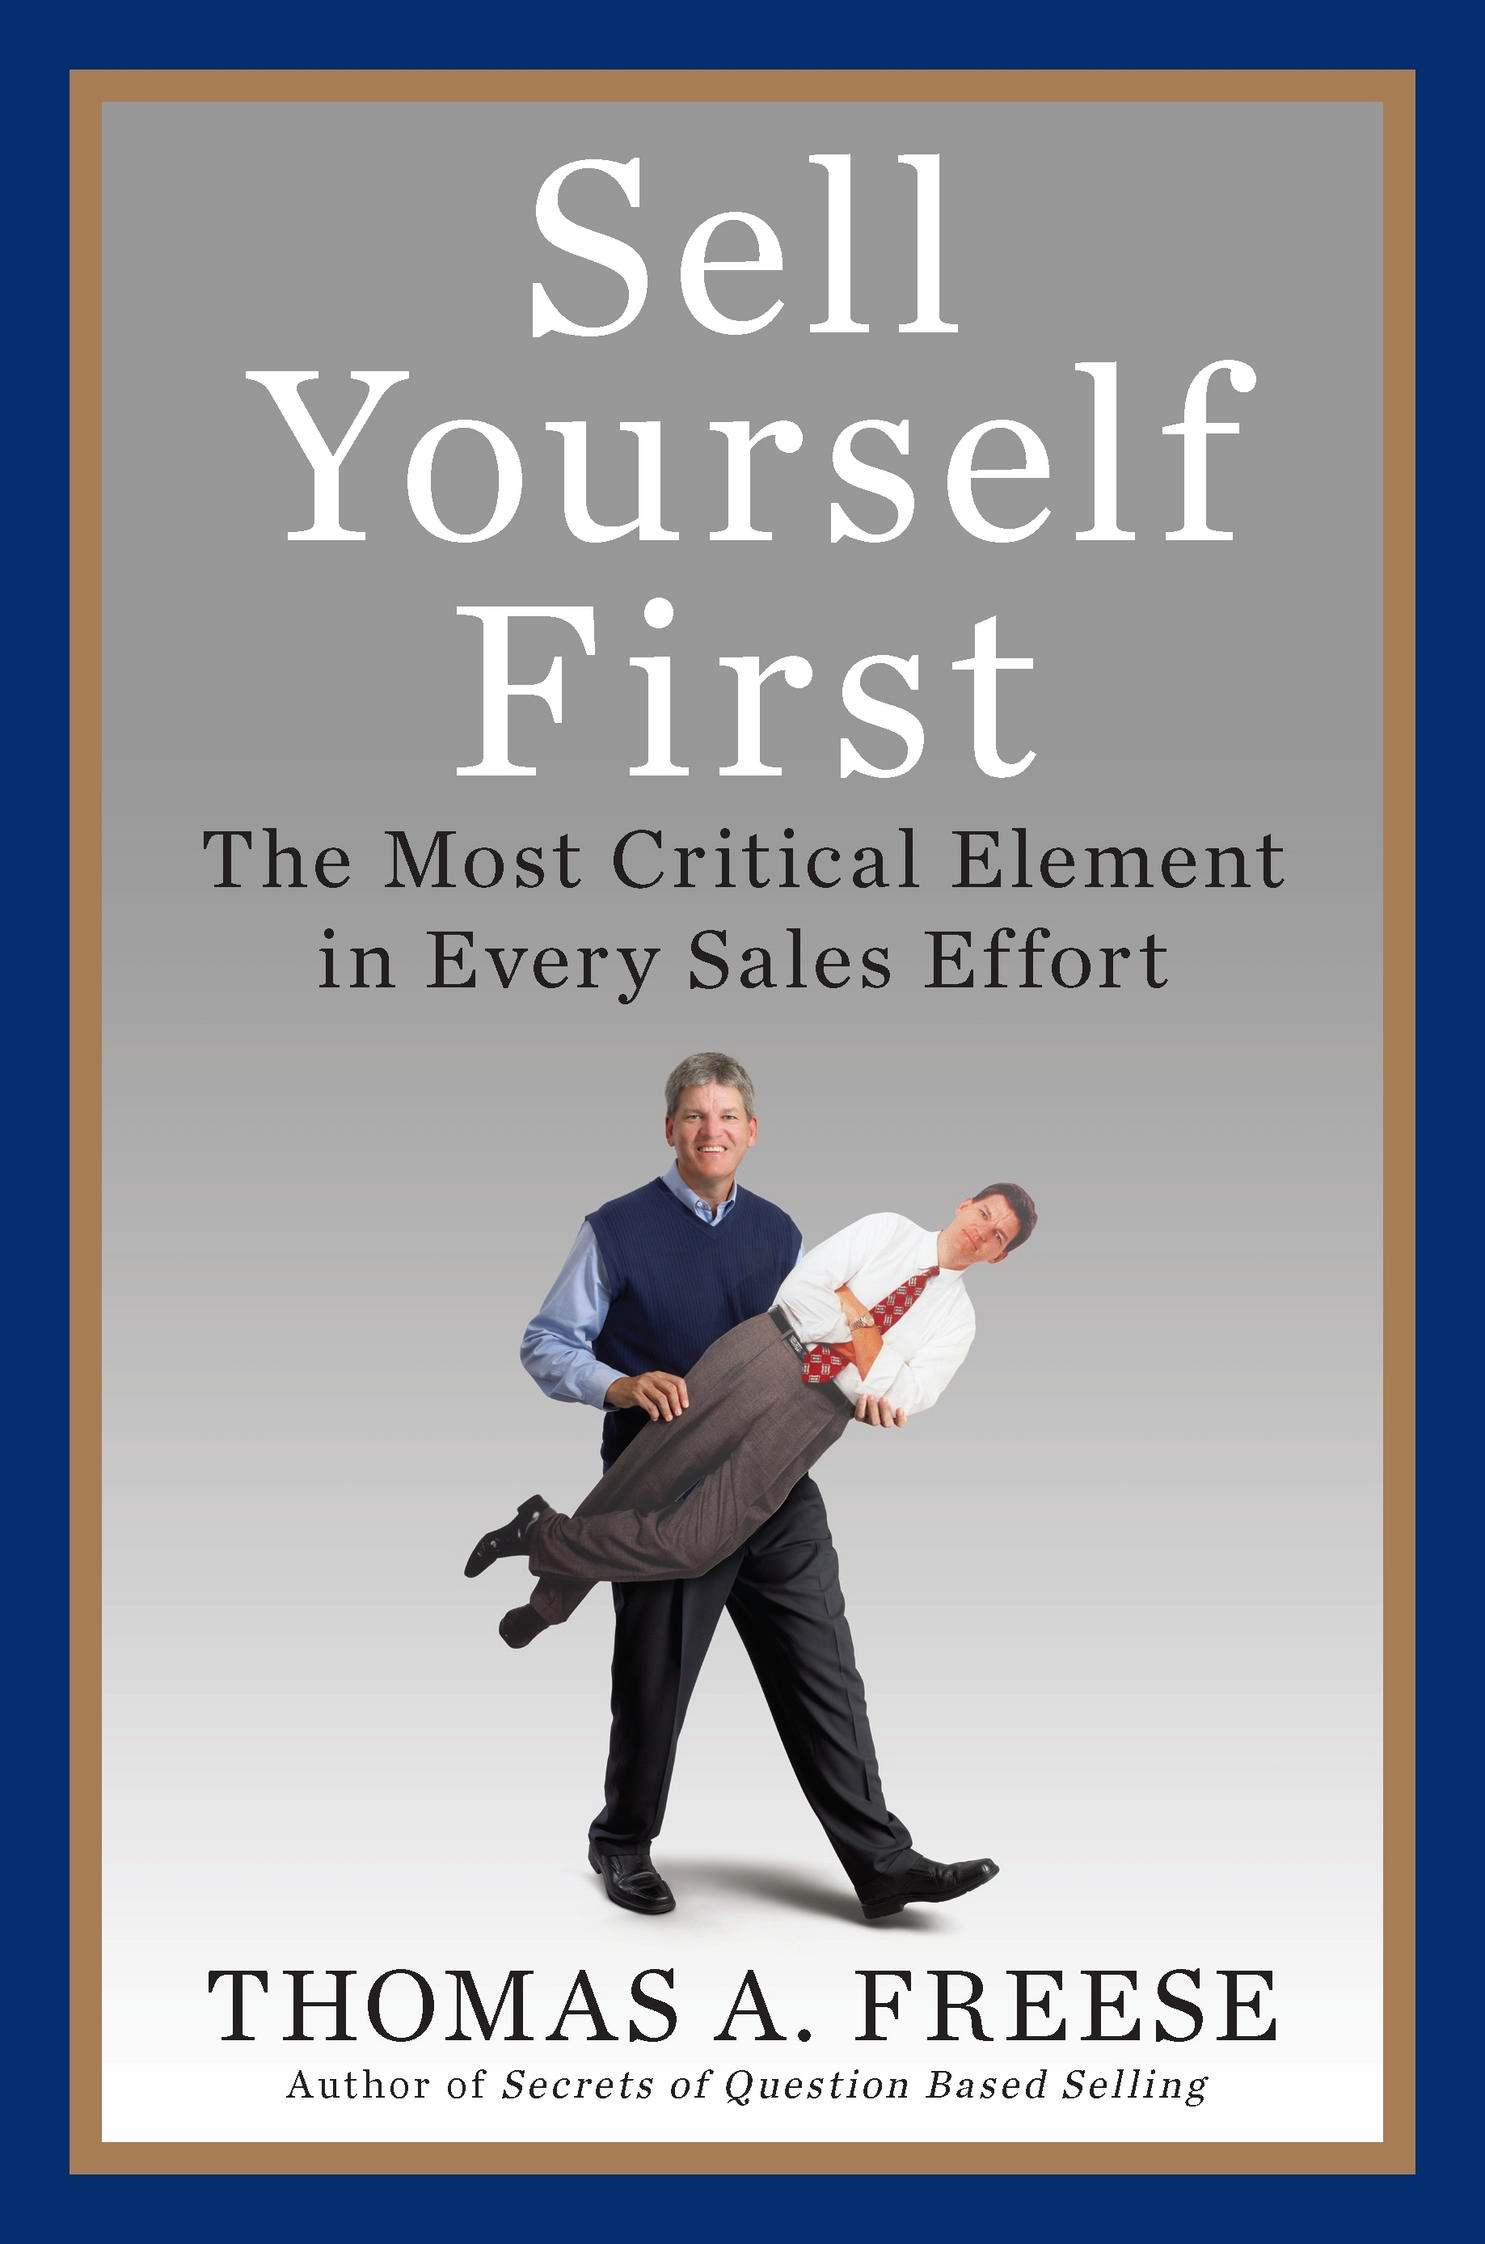 how to sell to yourself This book by joe, changed my perception of how important it is to sell yourselfafter reading this i at one year ranked top sales in my job i was hooked on selling, selling, selling.